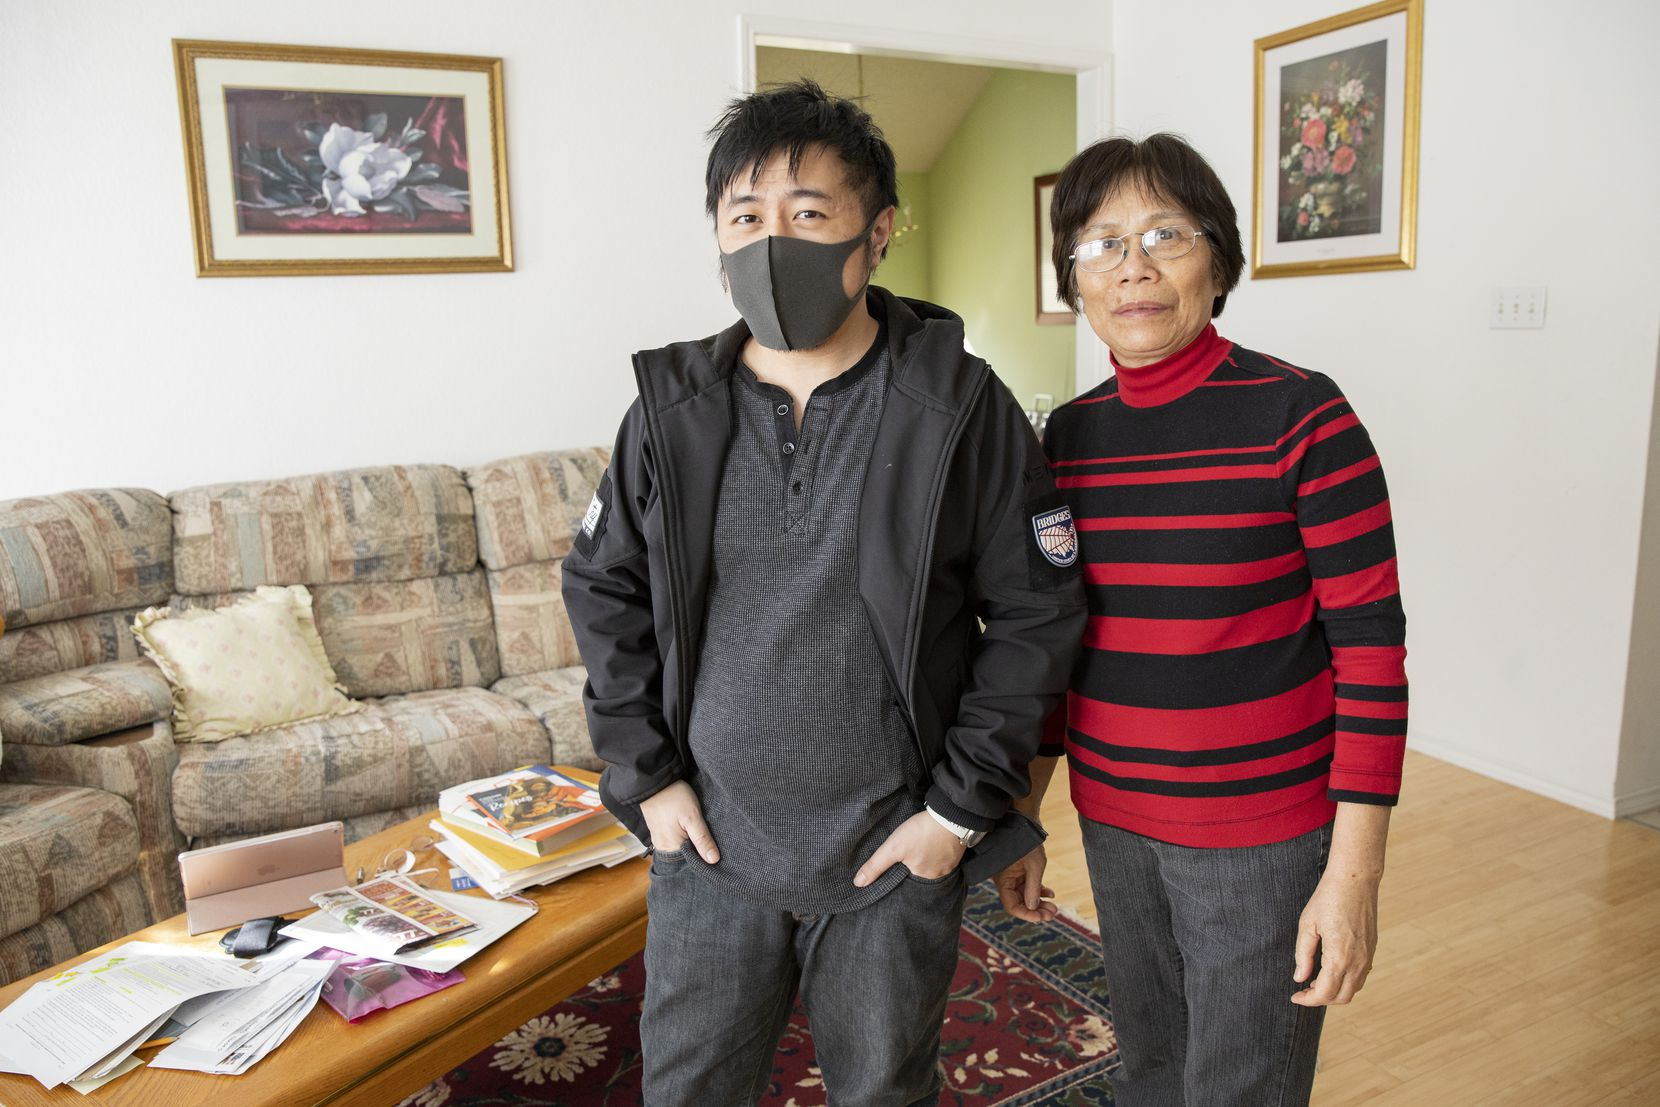 Warren Lee and his mother, Sho Lee, pose for a photo at home in Euless on Thursday . After nearly 11 months overseas, Warren returned home this week.